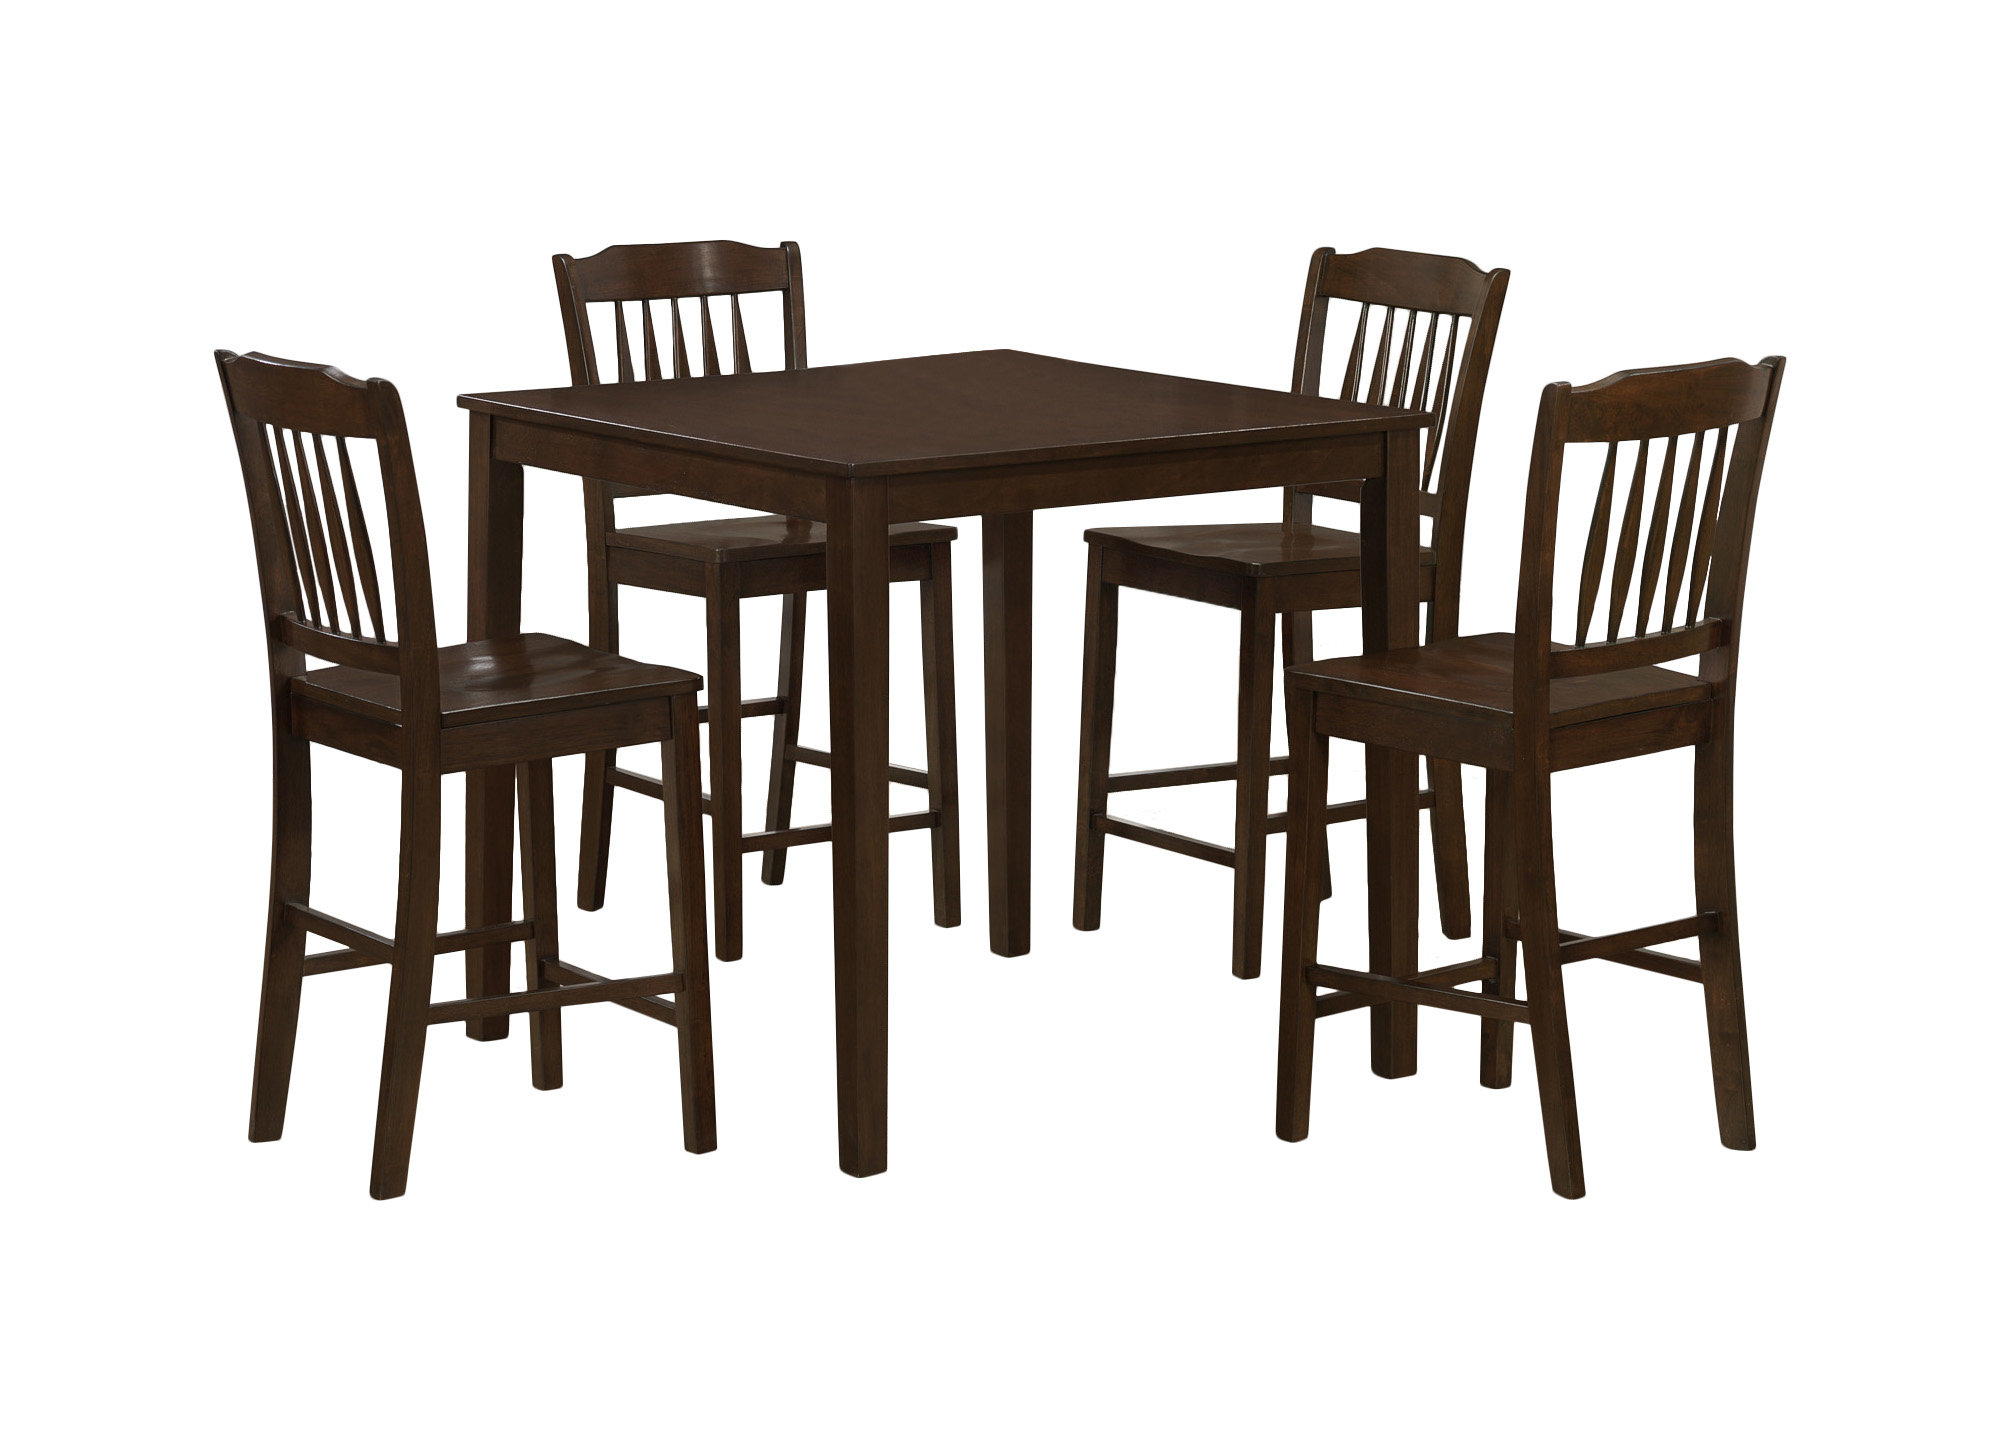 Favorite Saintcroix 3 Piece Dining Sets Pertaining To Monarch Specialties Inc (View 6 of 25)